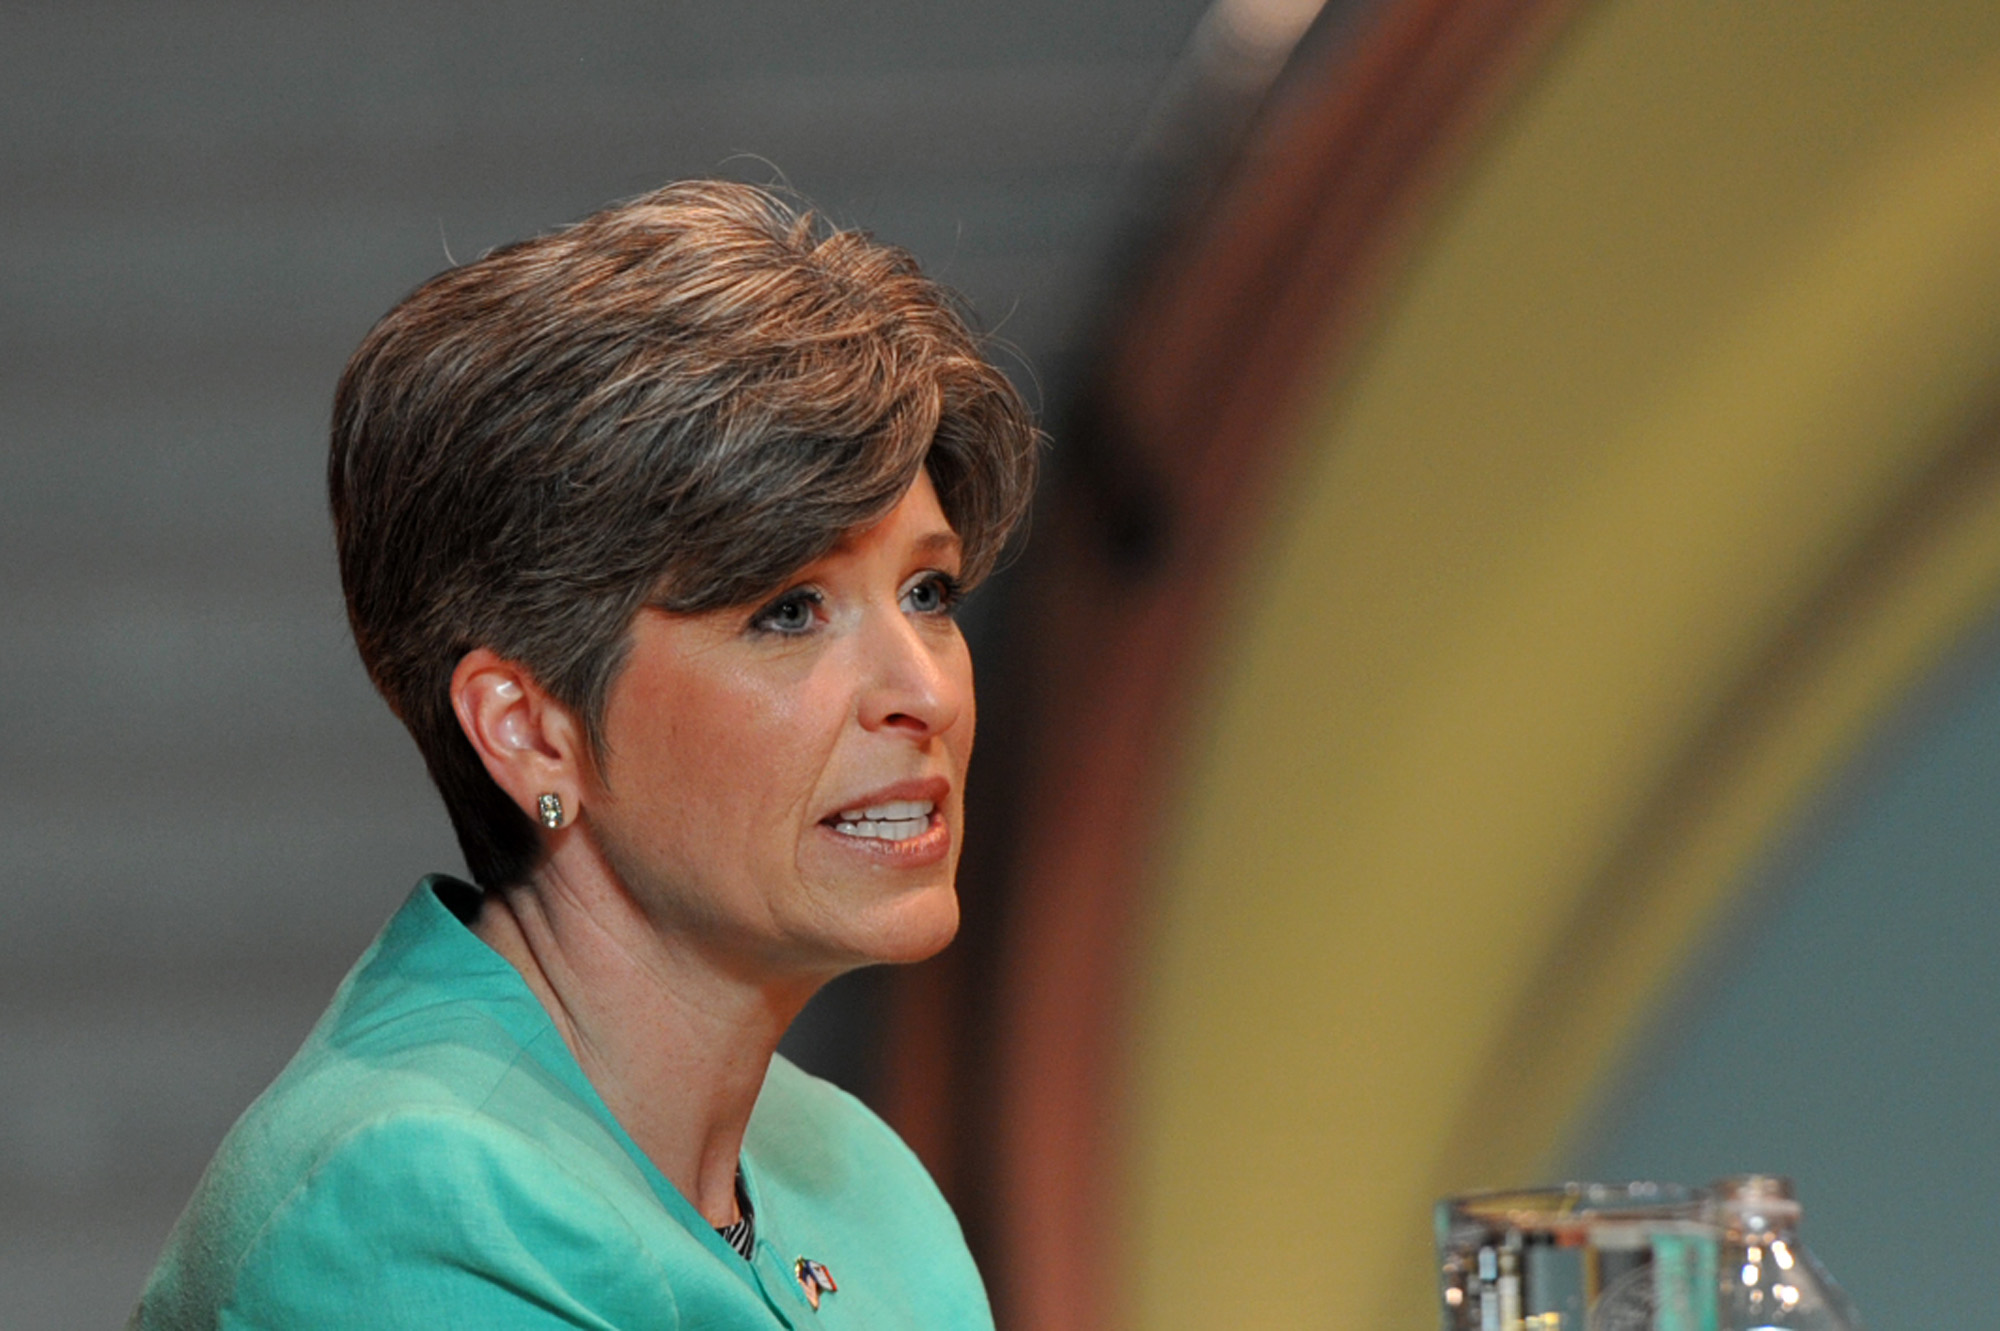 photo image Joni Ernst Says Fellow Iowan Steve King's Words Are 'Offensive And Racist'